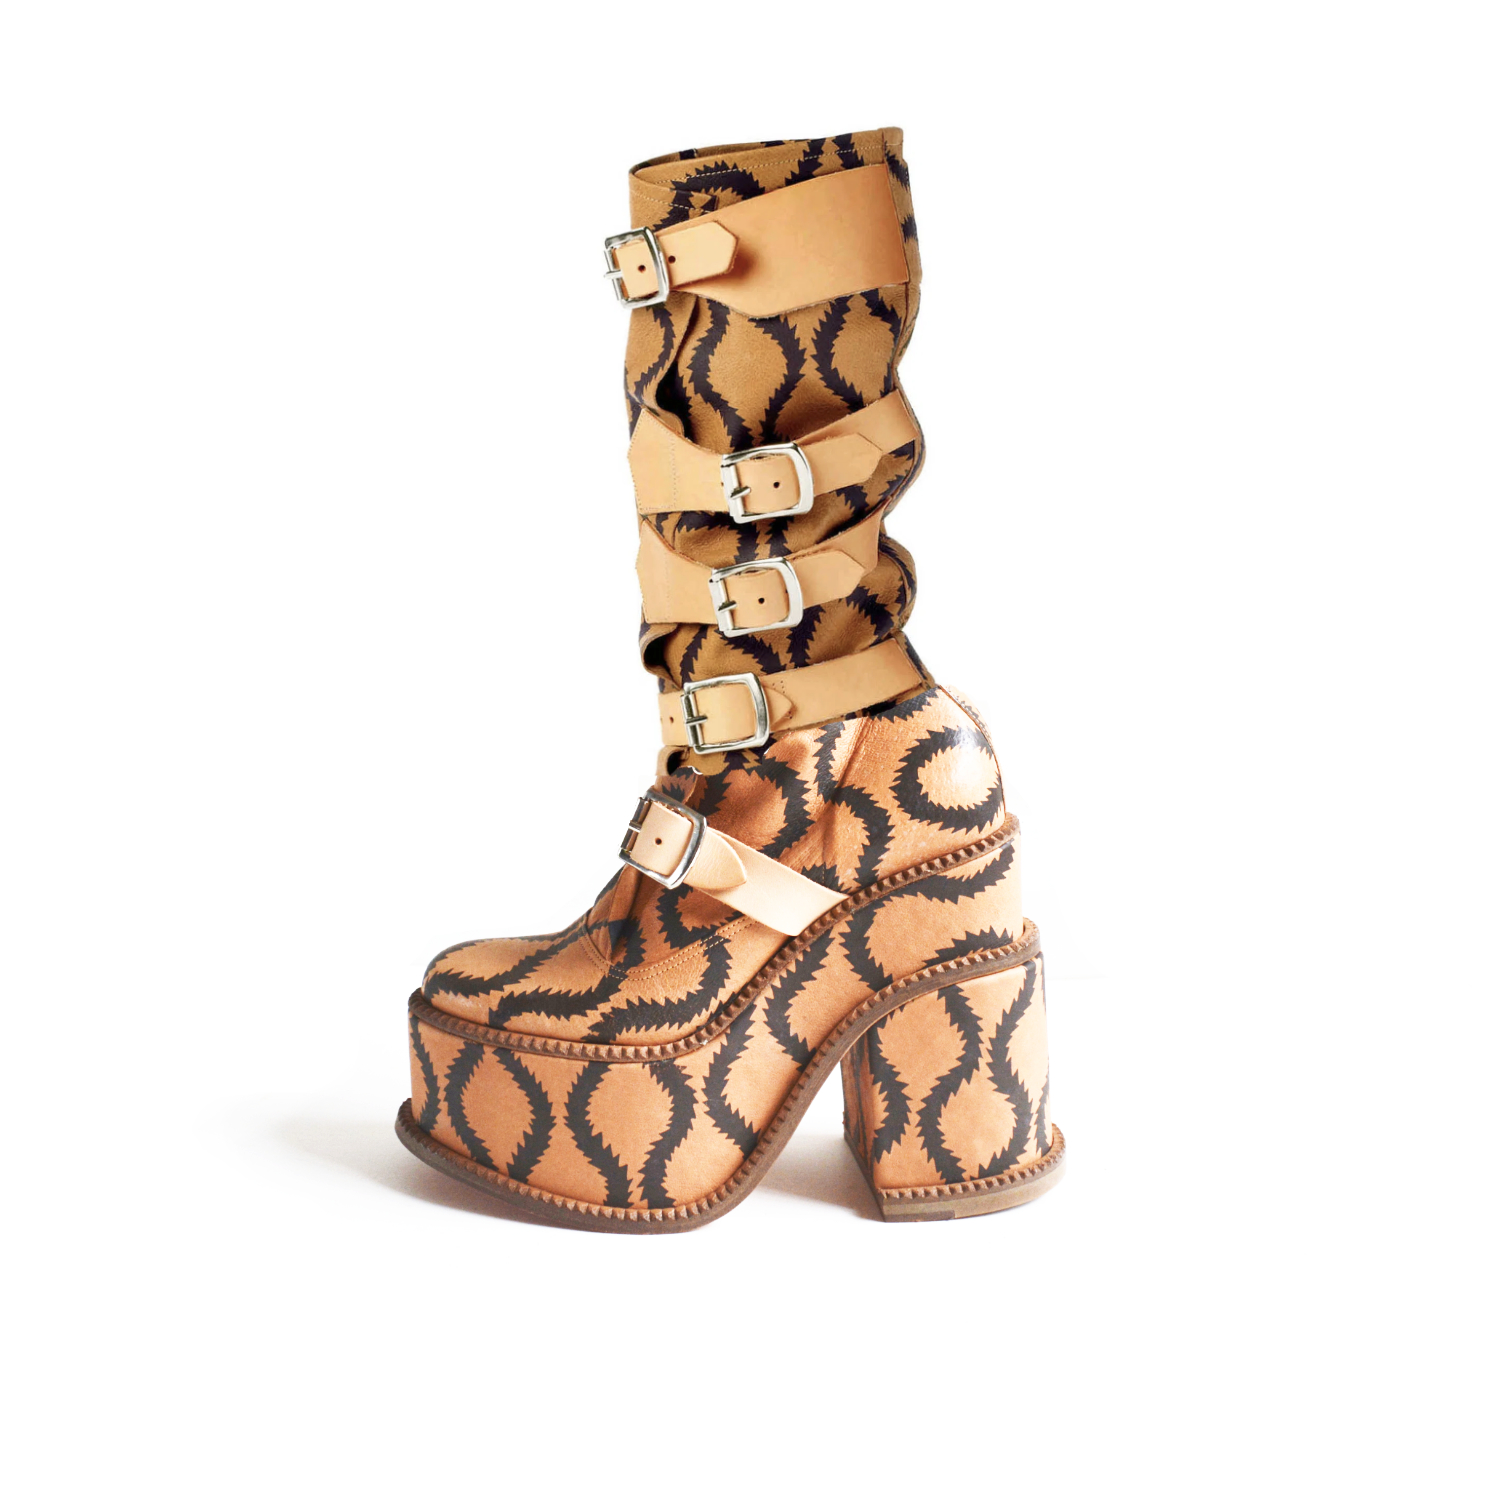 Vivienne Westwood Pirate Clompers Boots 37 | NITRYL